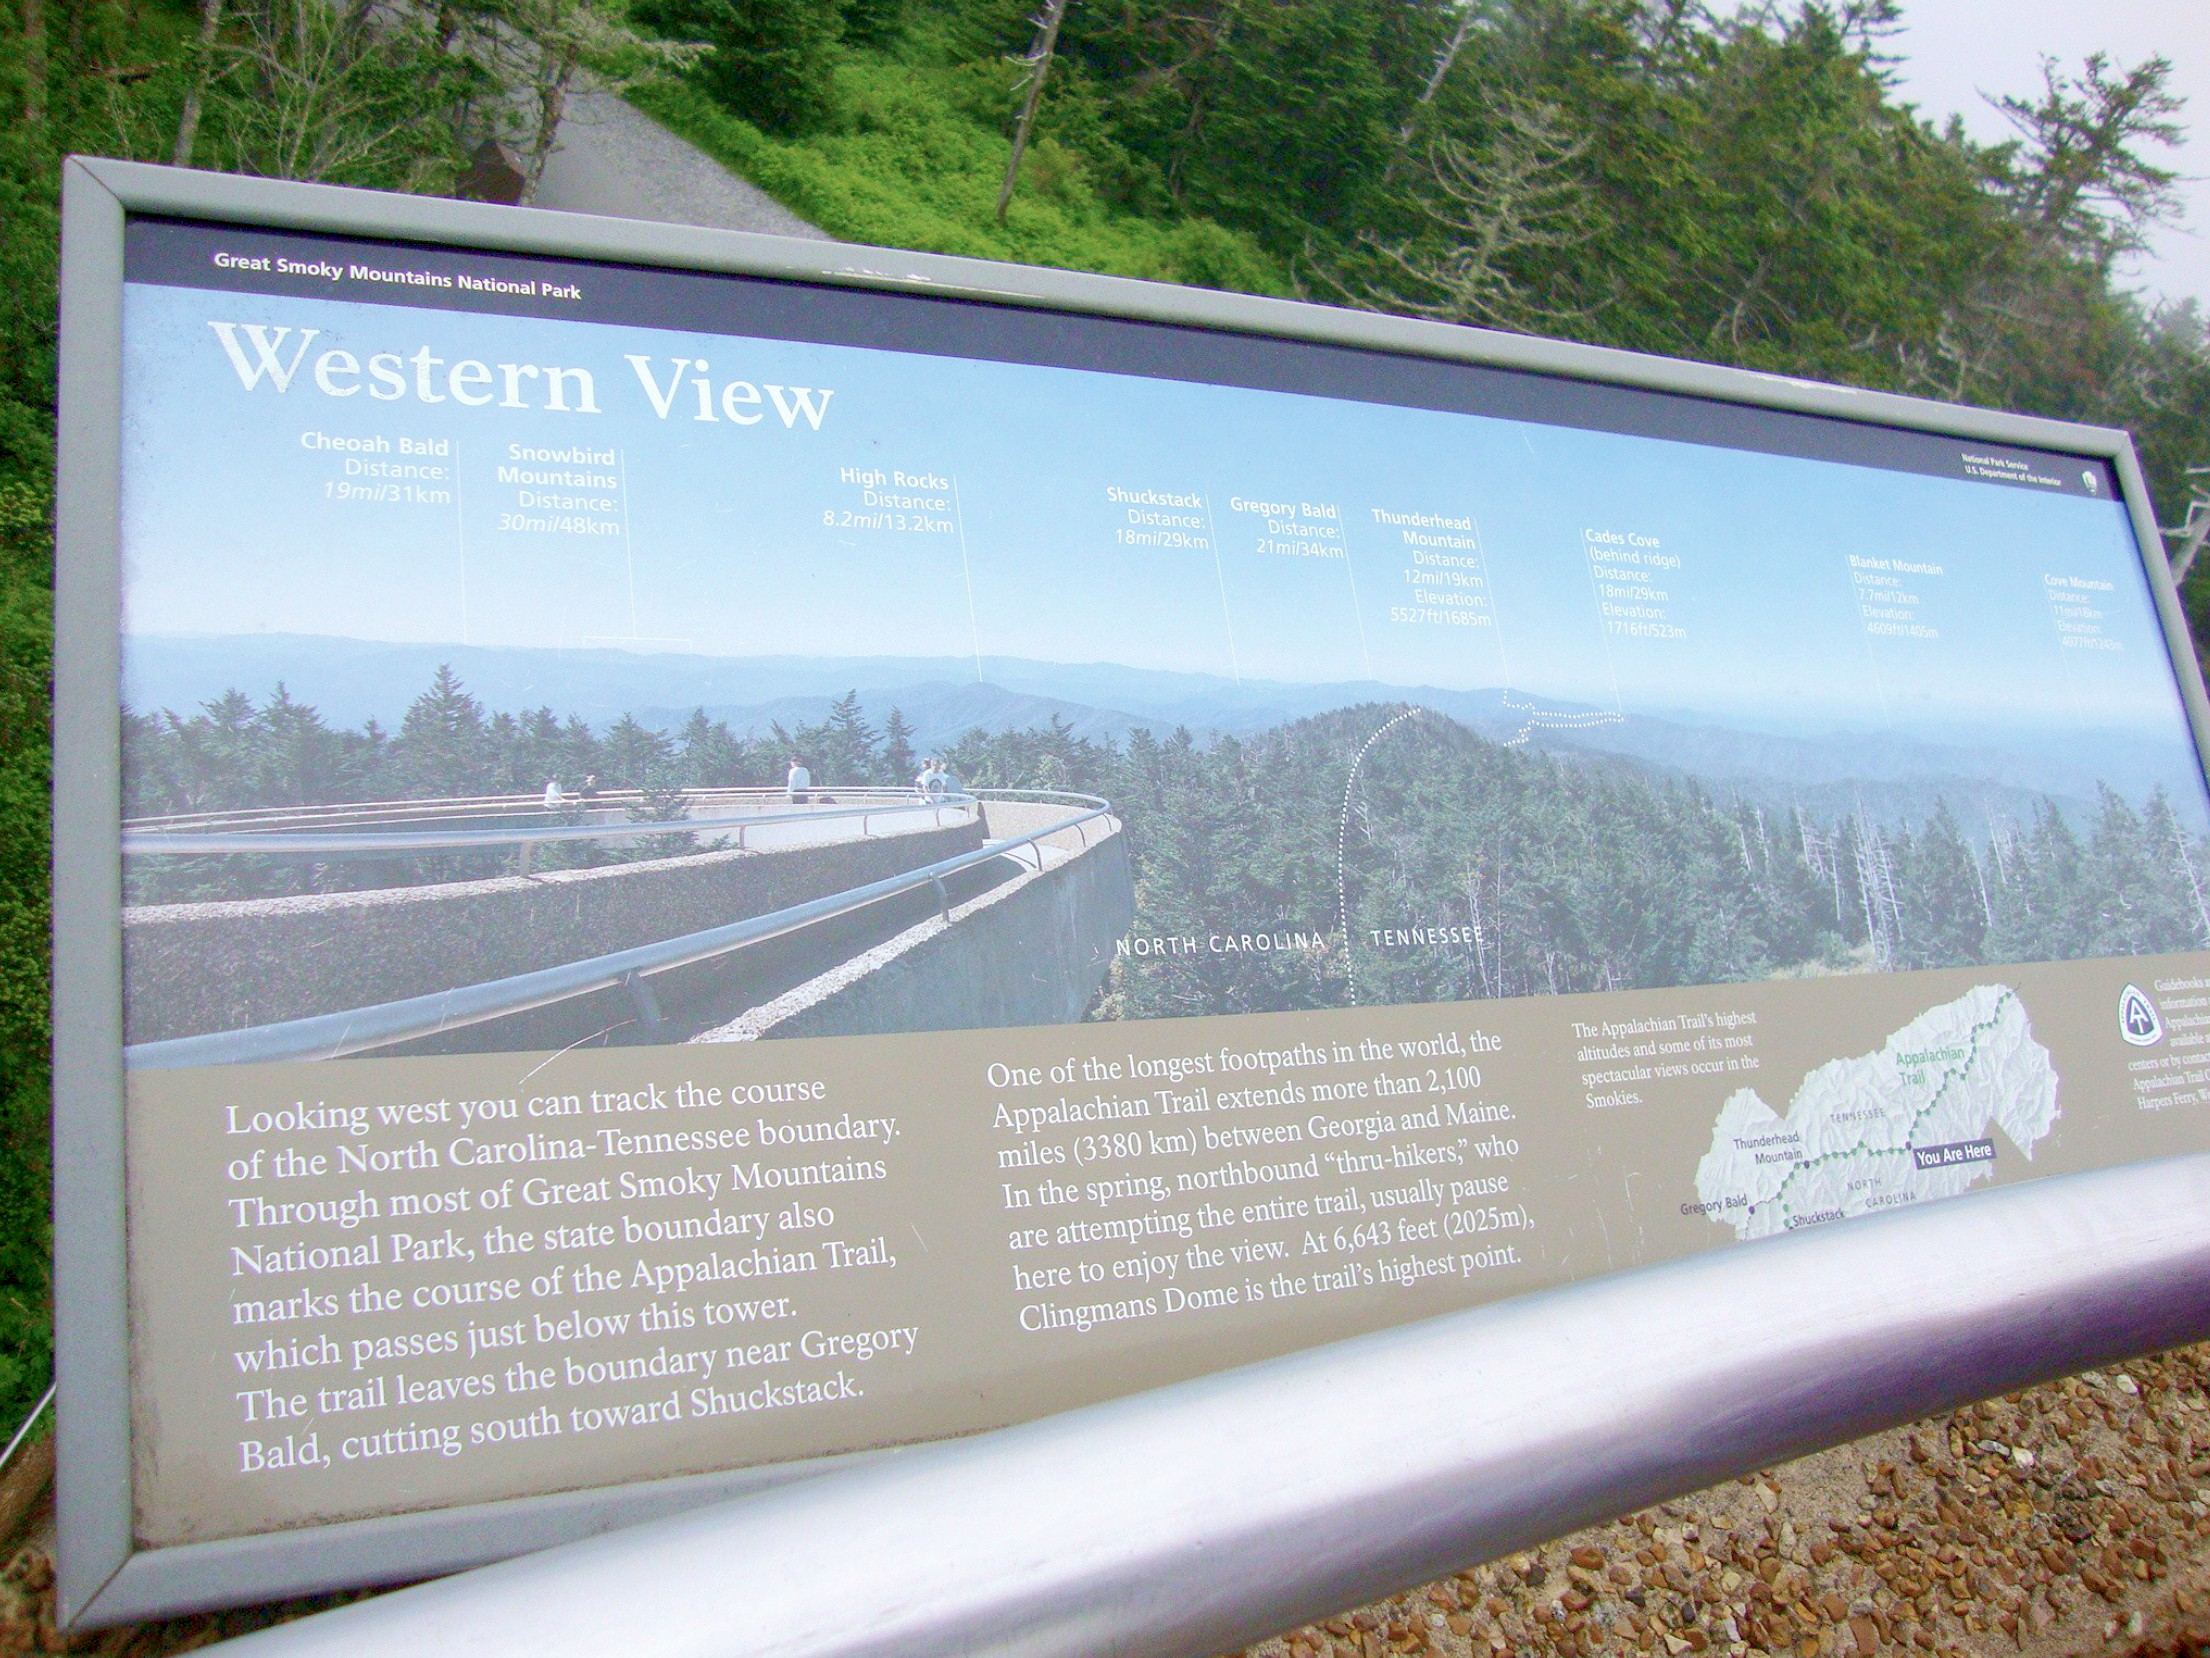 Exploring the Great Smoky Mountains National Park and Clingmans Dome